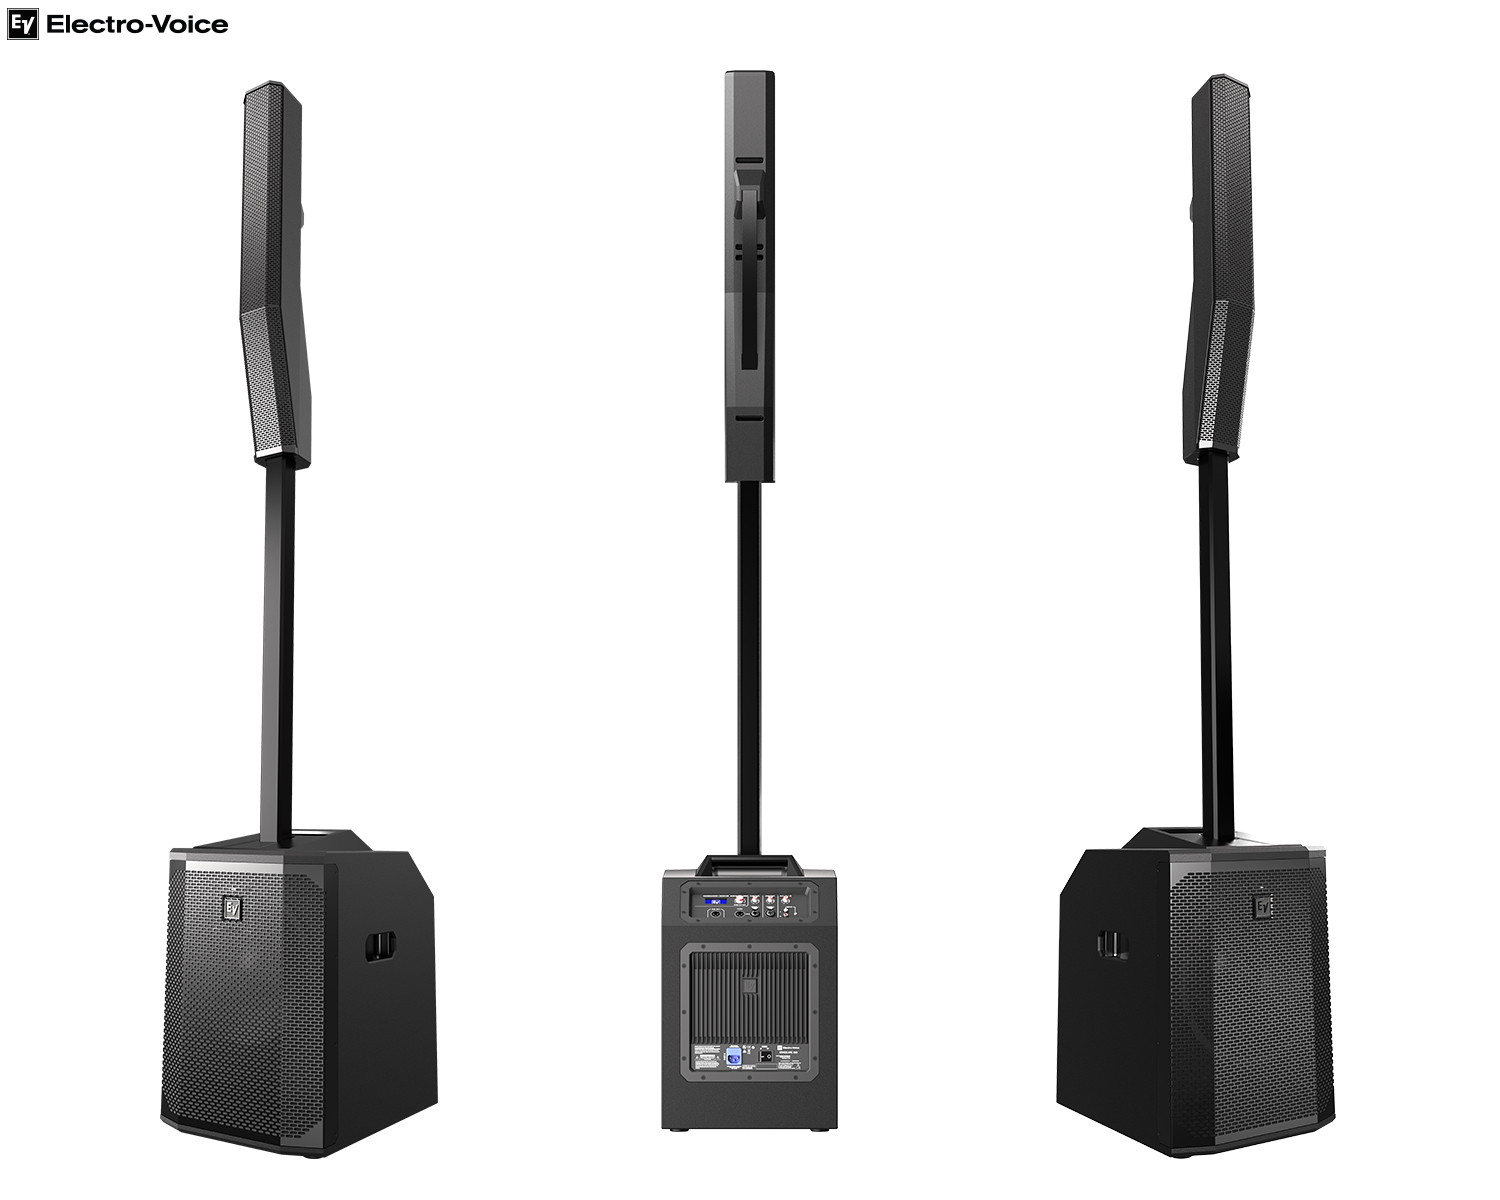 Electro-Voice Evolve 50 review by Audio Technology Magazine